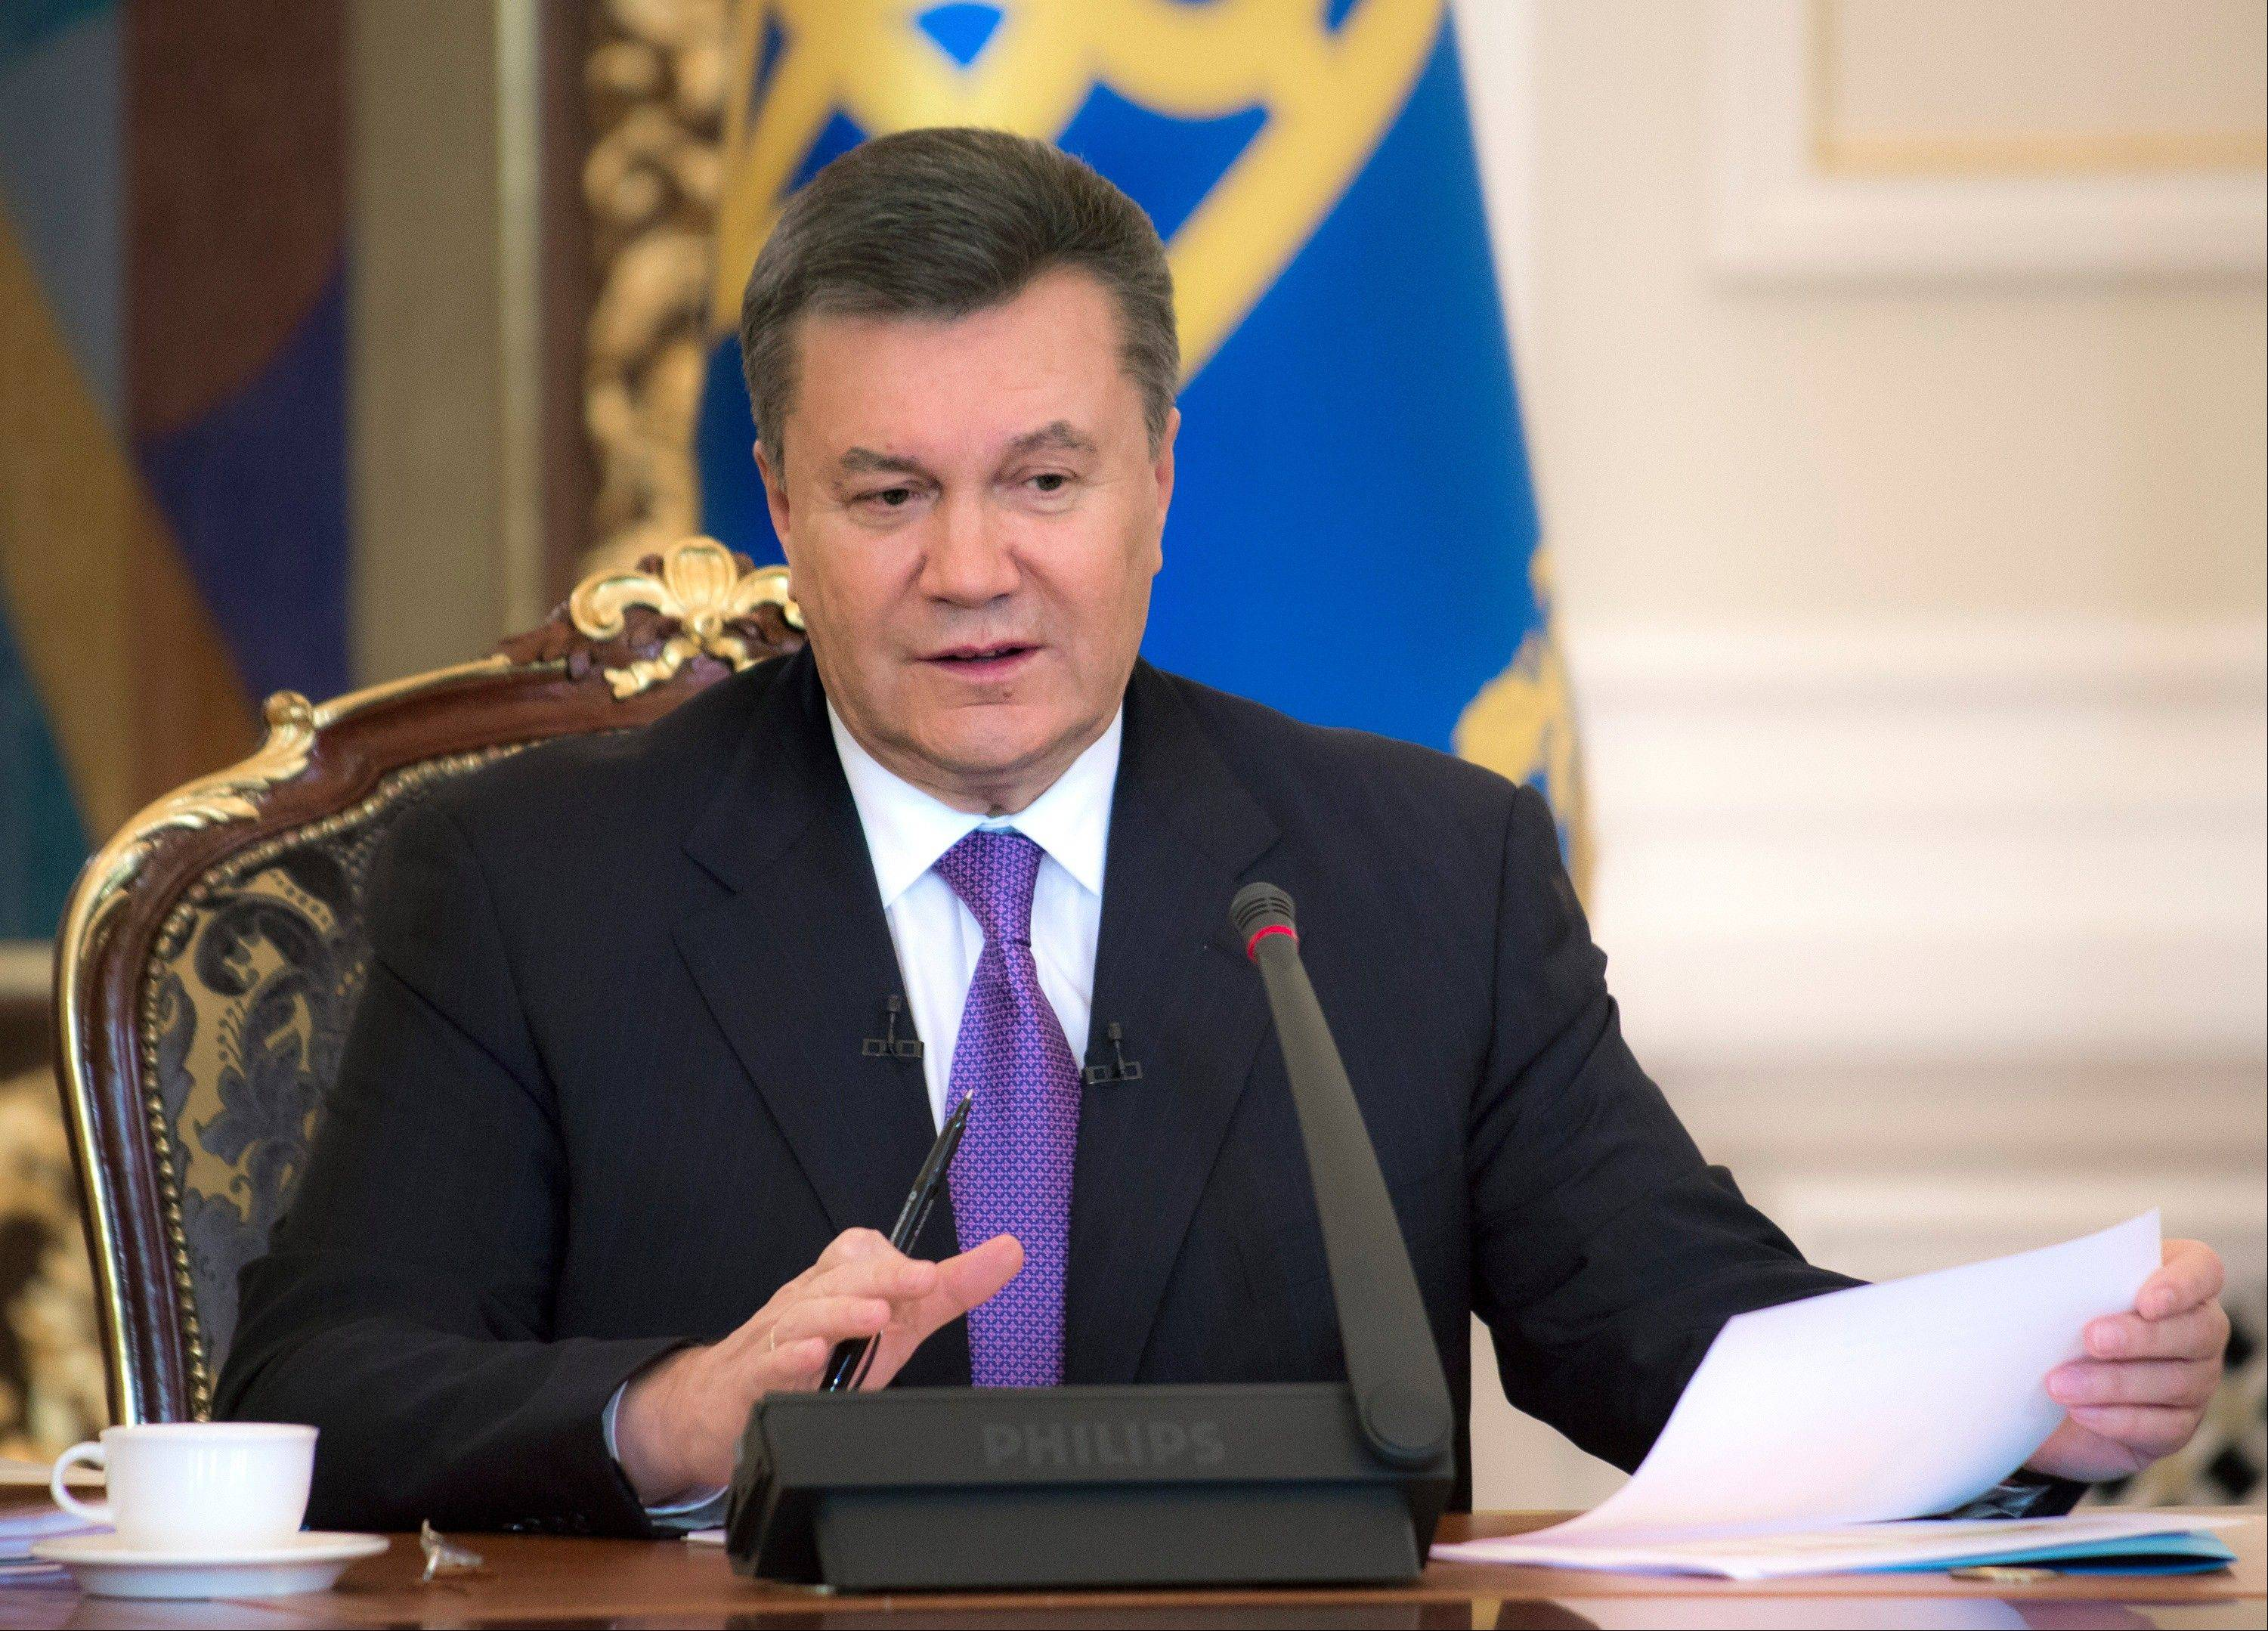 Ukraine's embattled president Viktor Yanukovych began taking sick leave on Thursday, as the country's political crisis continues without signs of resolution. A statement on the presidential website Thursday said Yanukovych has an acute respiratory illness and high fever. There was no indication of how long he might be on leave or whether he would be able to do any work.